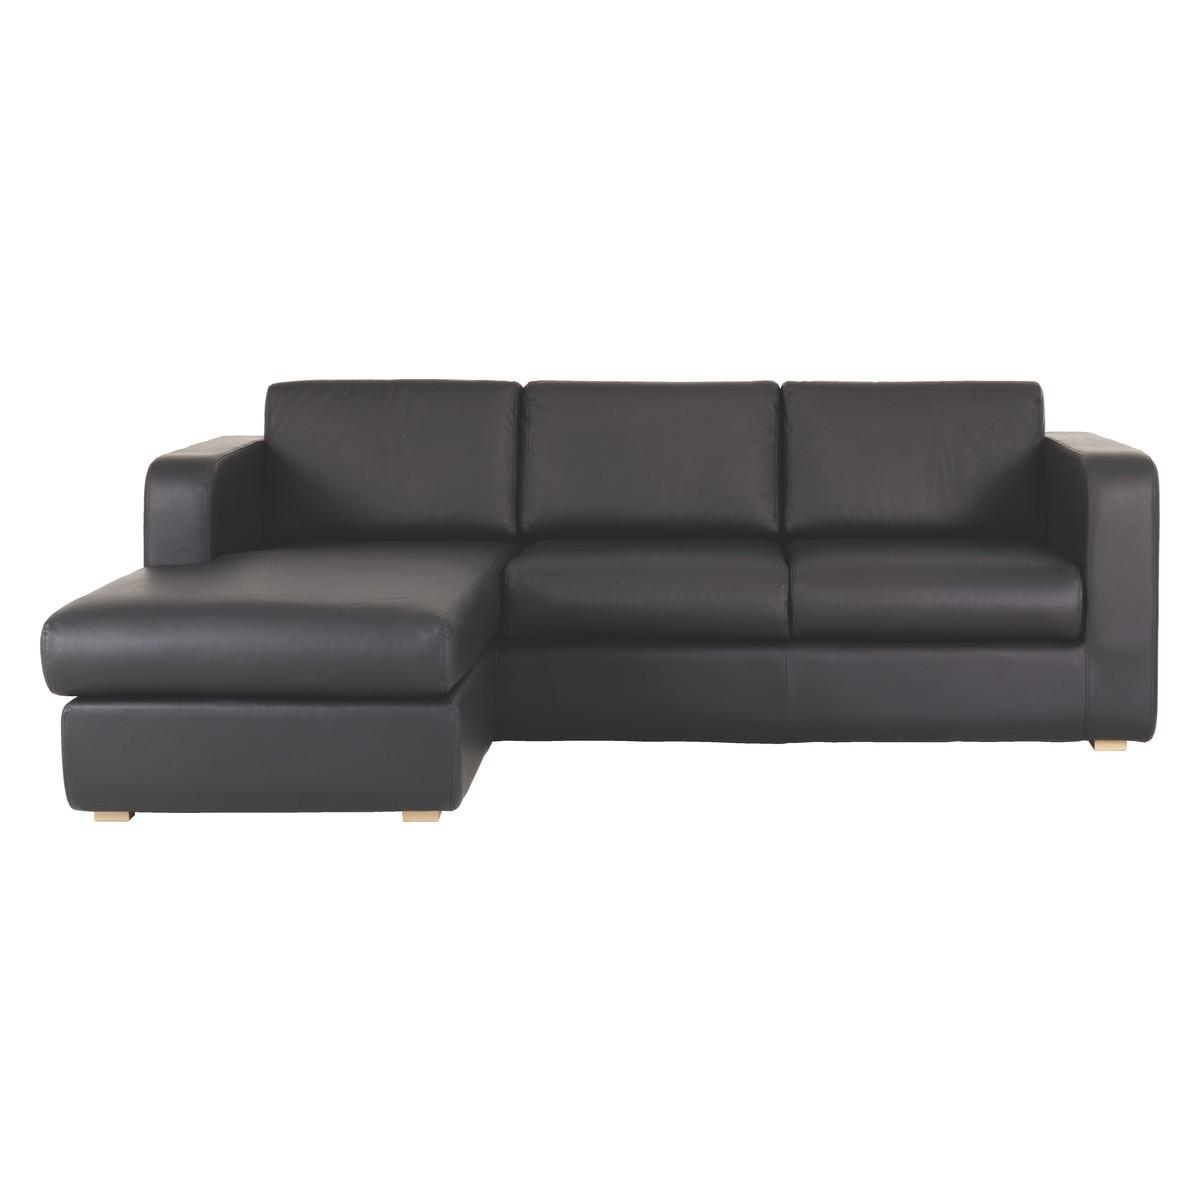 Sofas: Chaise Sofa Bed | Corner Lounge With Sofa Bed & Chaise For Corner Sofa Bed Sale (View 13 of 20)